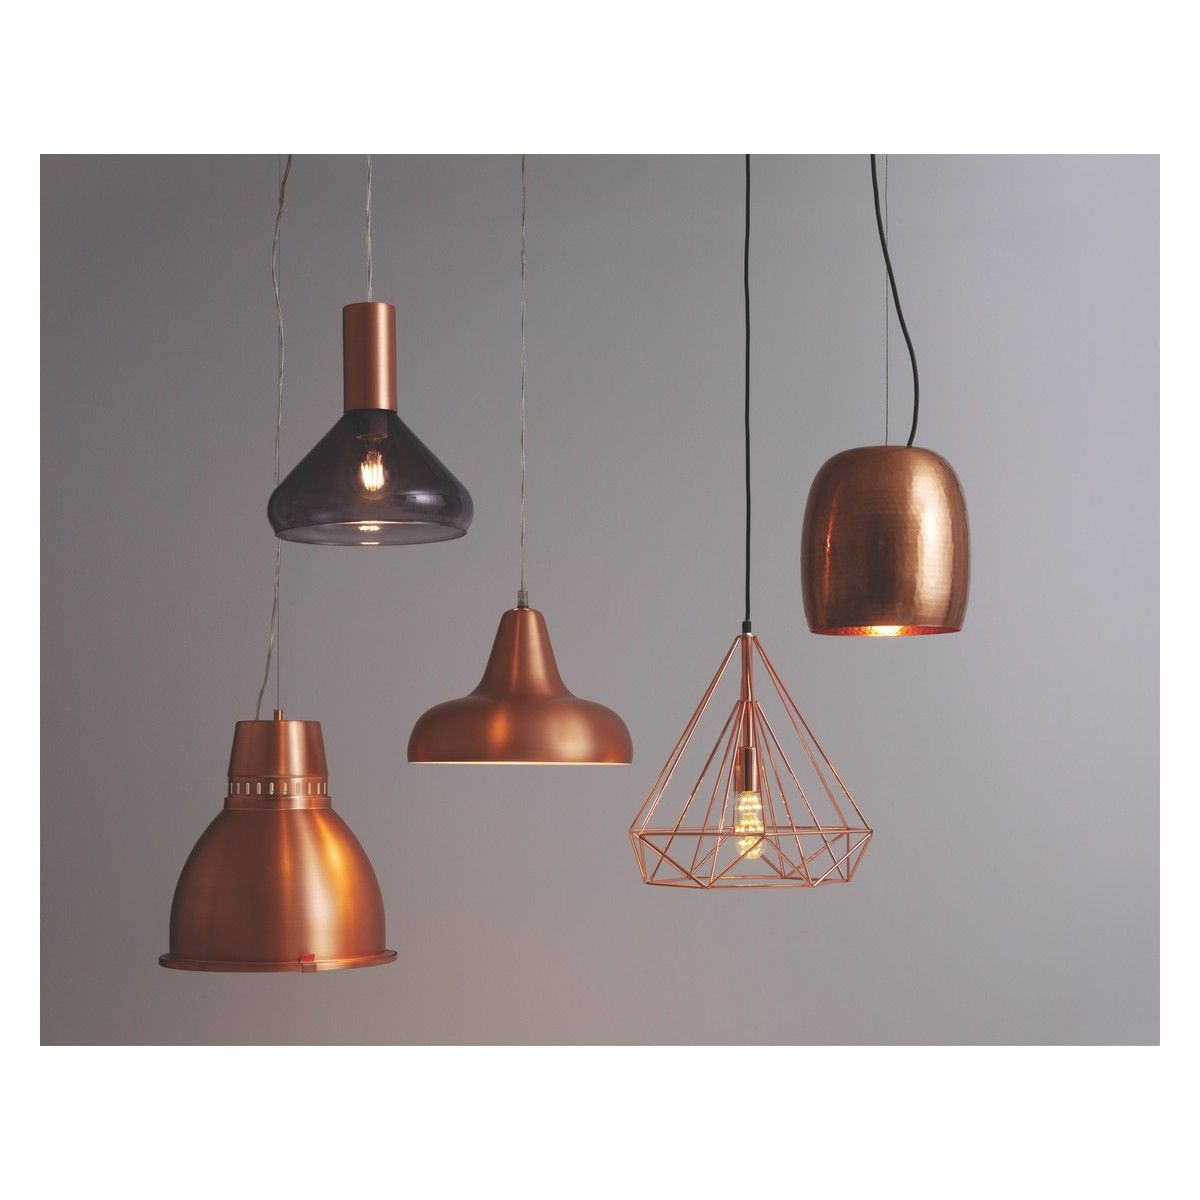 Copper Kitchen Light Fixtures Antwerp Copper Metal Ceiling Light Buy Now At Habitat Uk Home